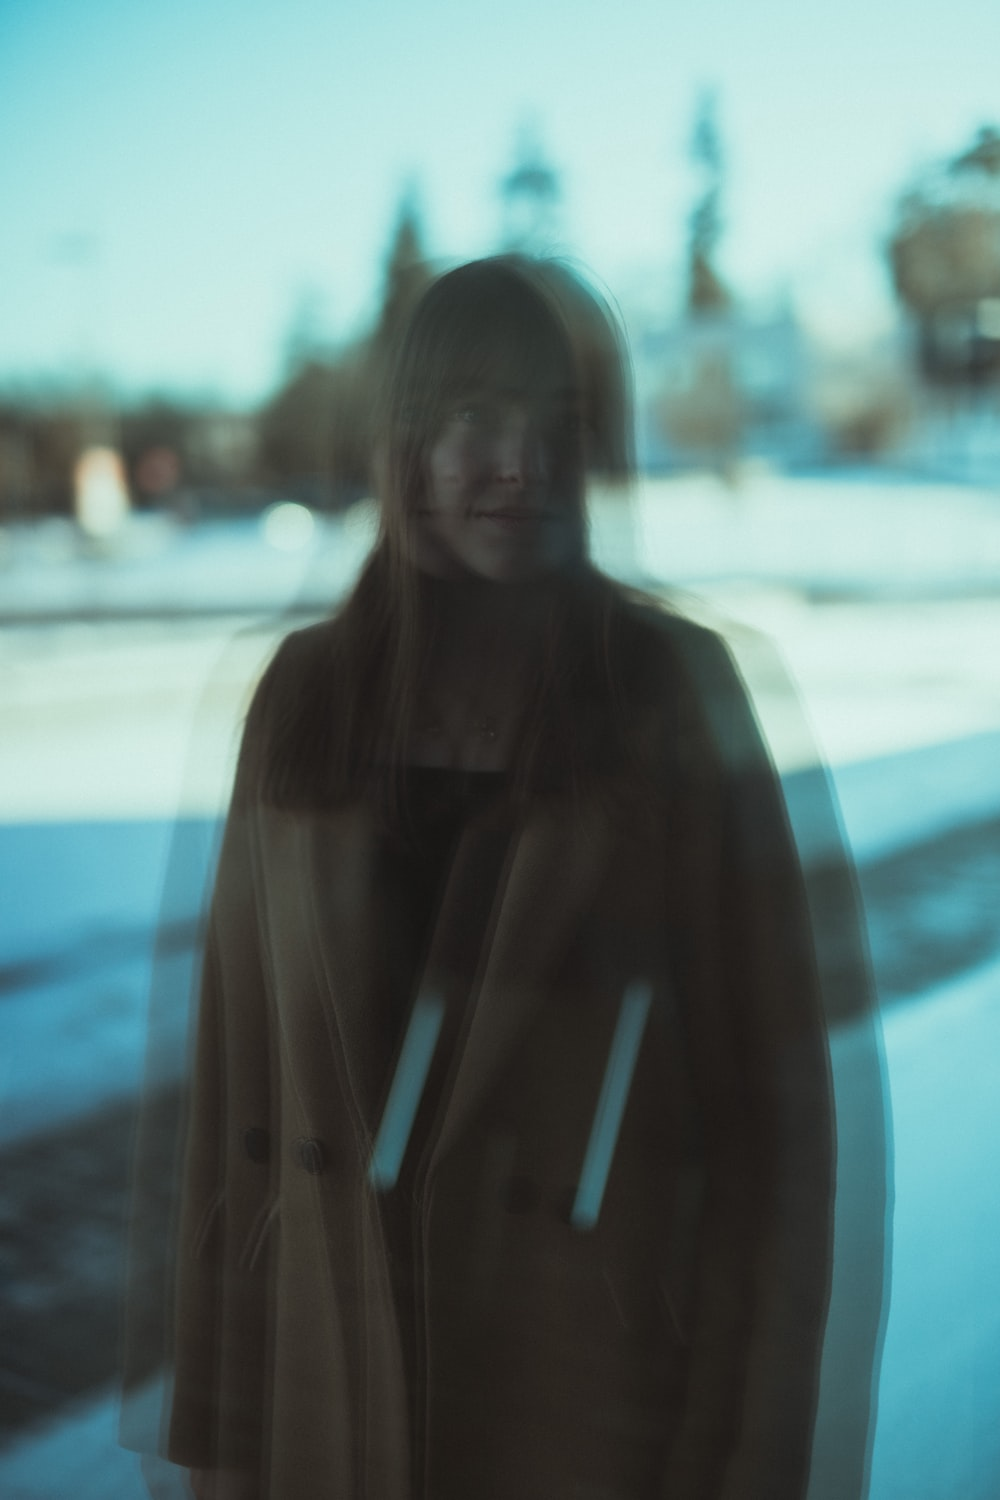 woman in black hoodie standing on snow covered ground during daytime